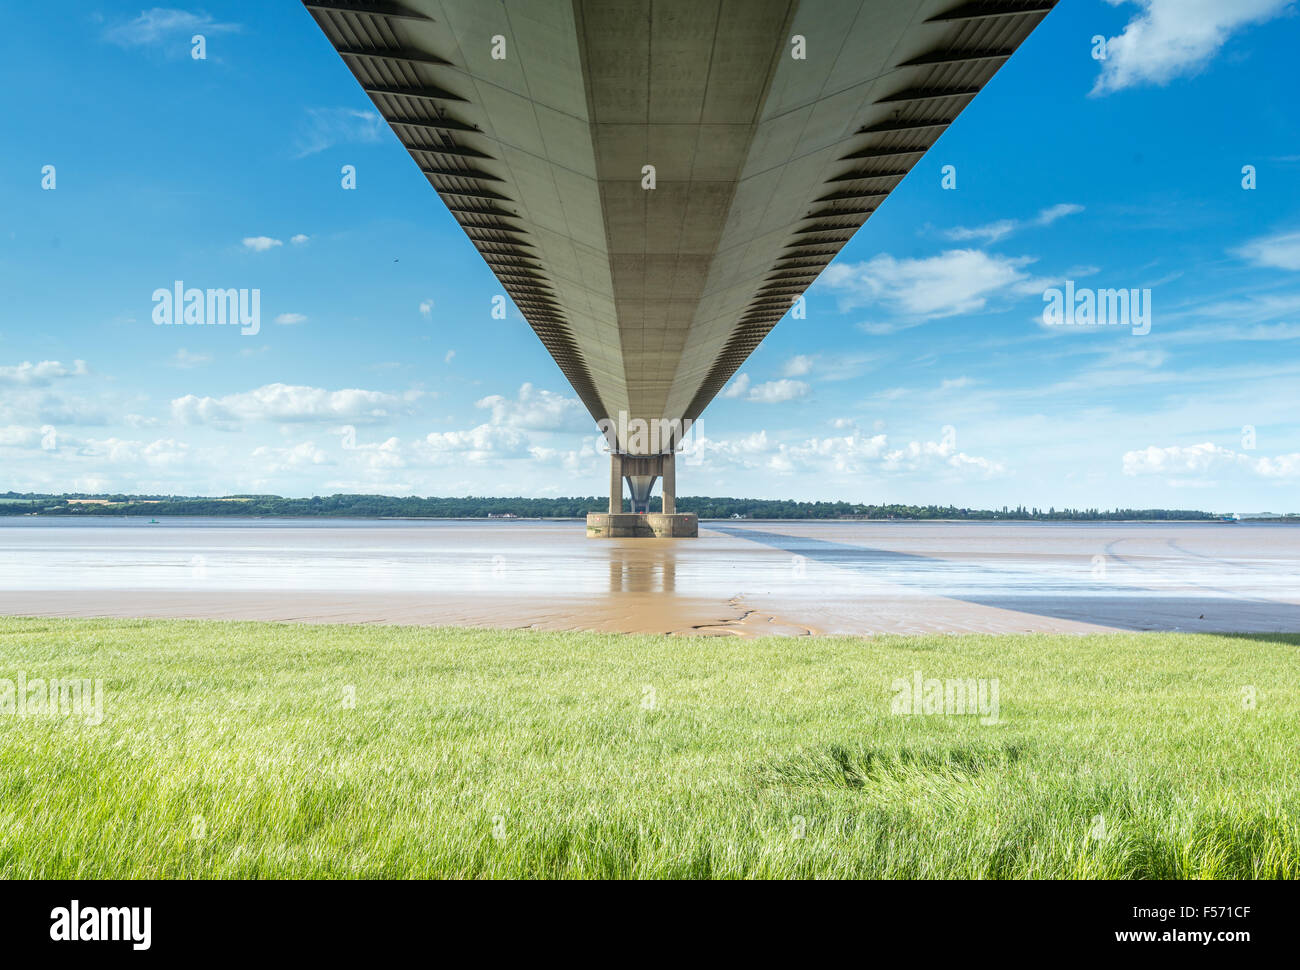 The Humber Suspension Bridge, Hull, United Kingdom. - Stock Image